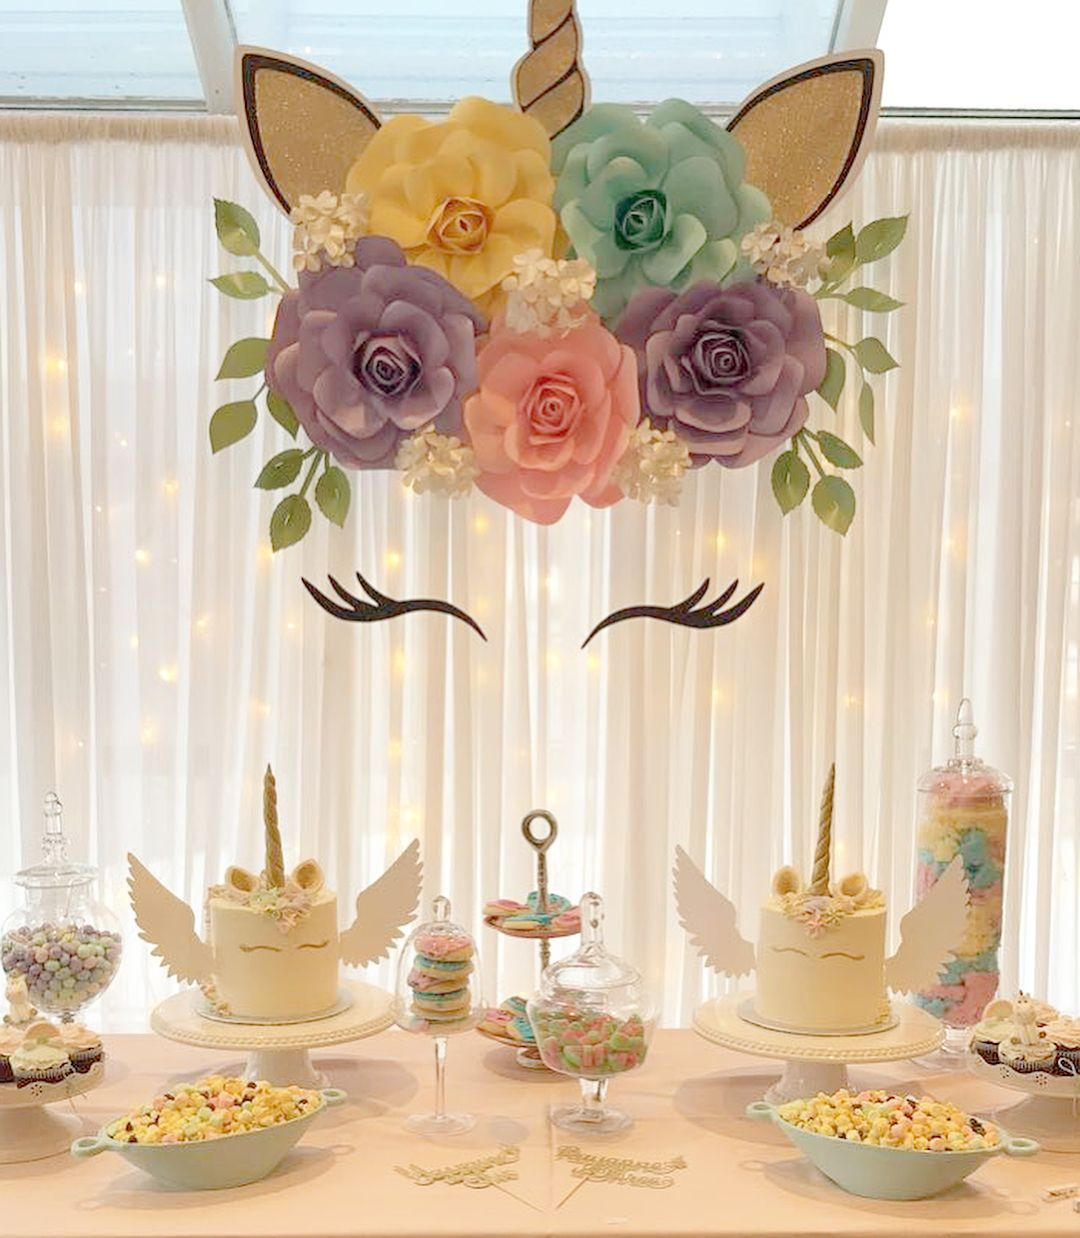 The Paper Florist On Instagram Unicorn Theme Birthday Party For 2 Little Princesses I Wont Deny Had More Fun Making This Than Any Other Backdrop